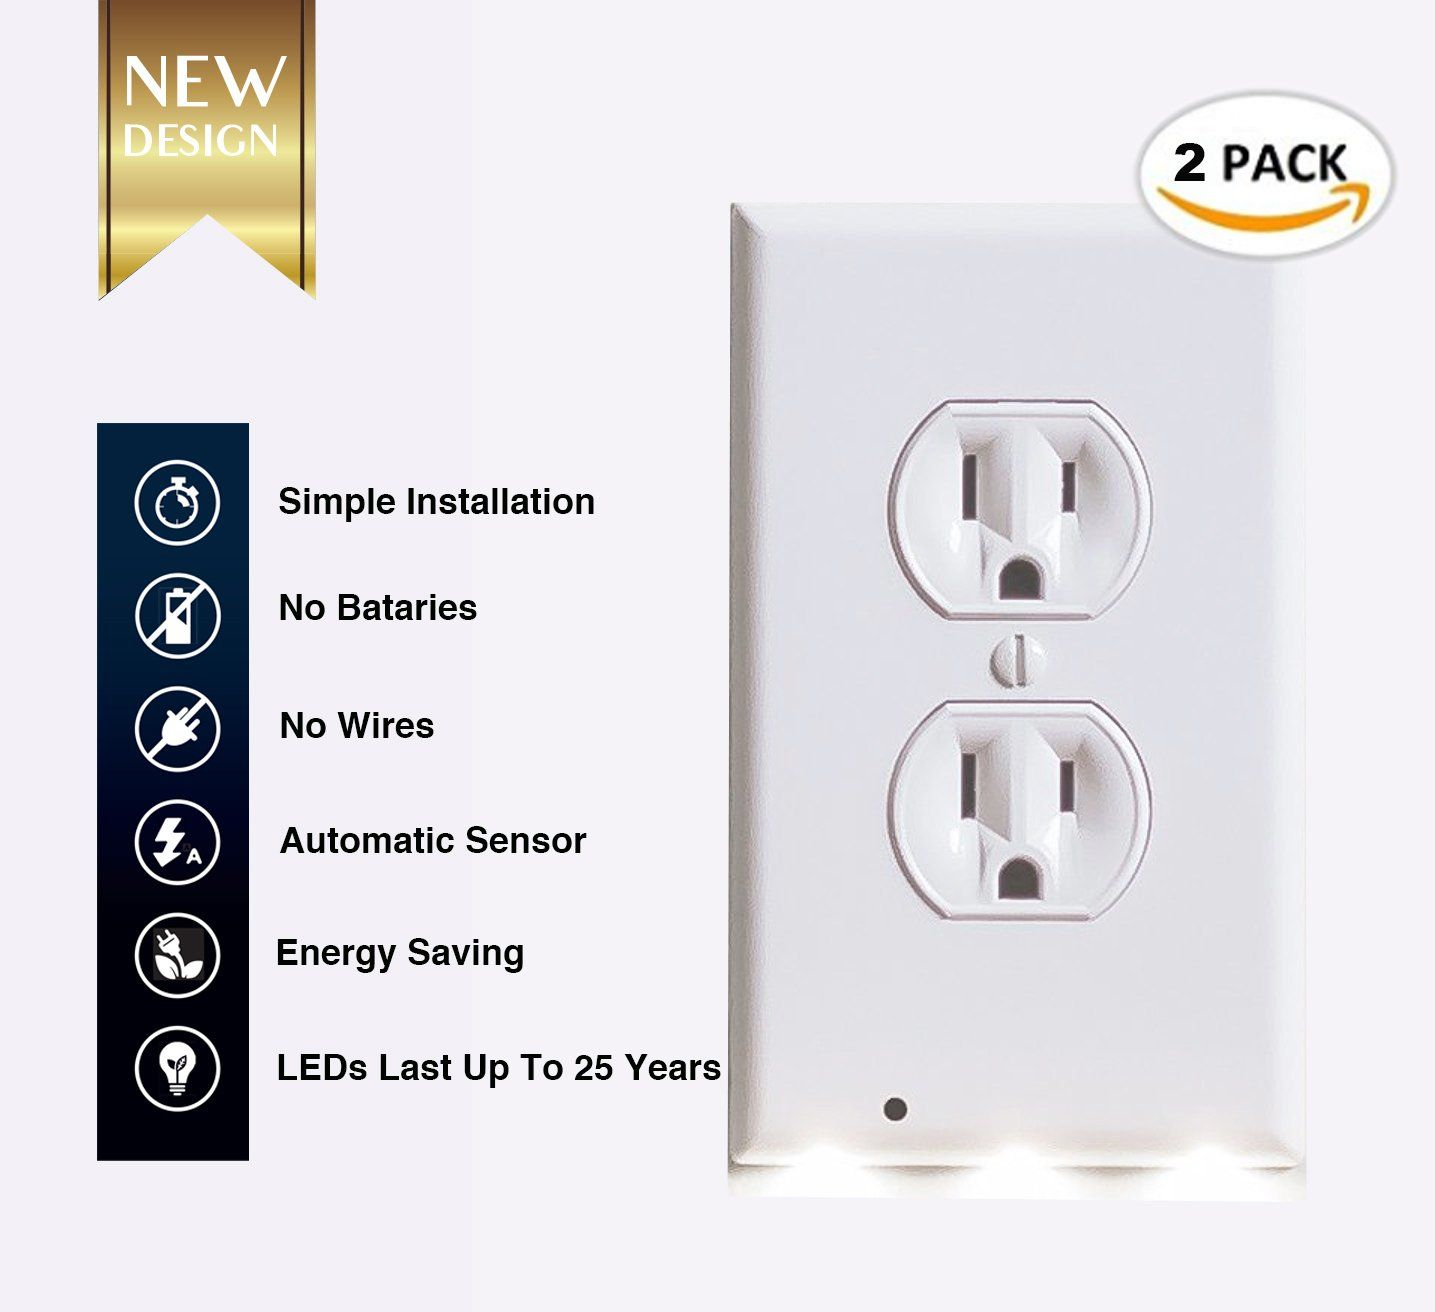 2 PACK) - Outlet wall plate with Led night light – Guidelight ...